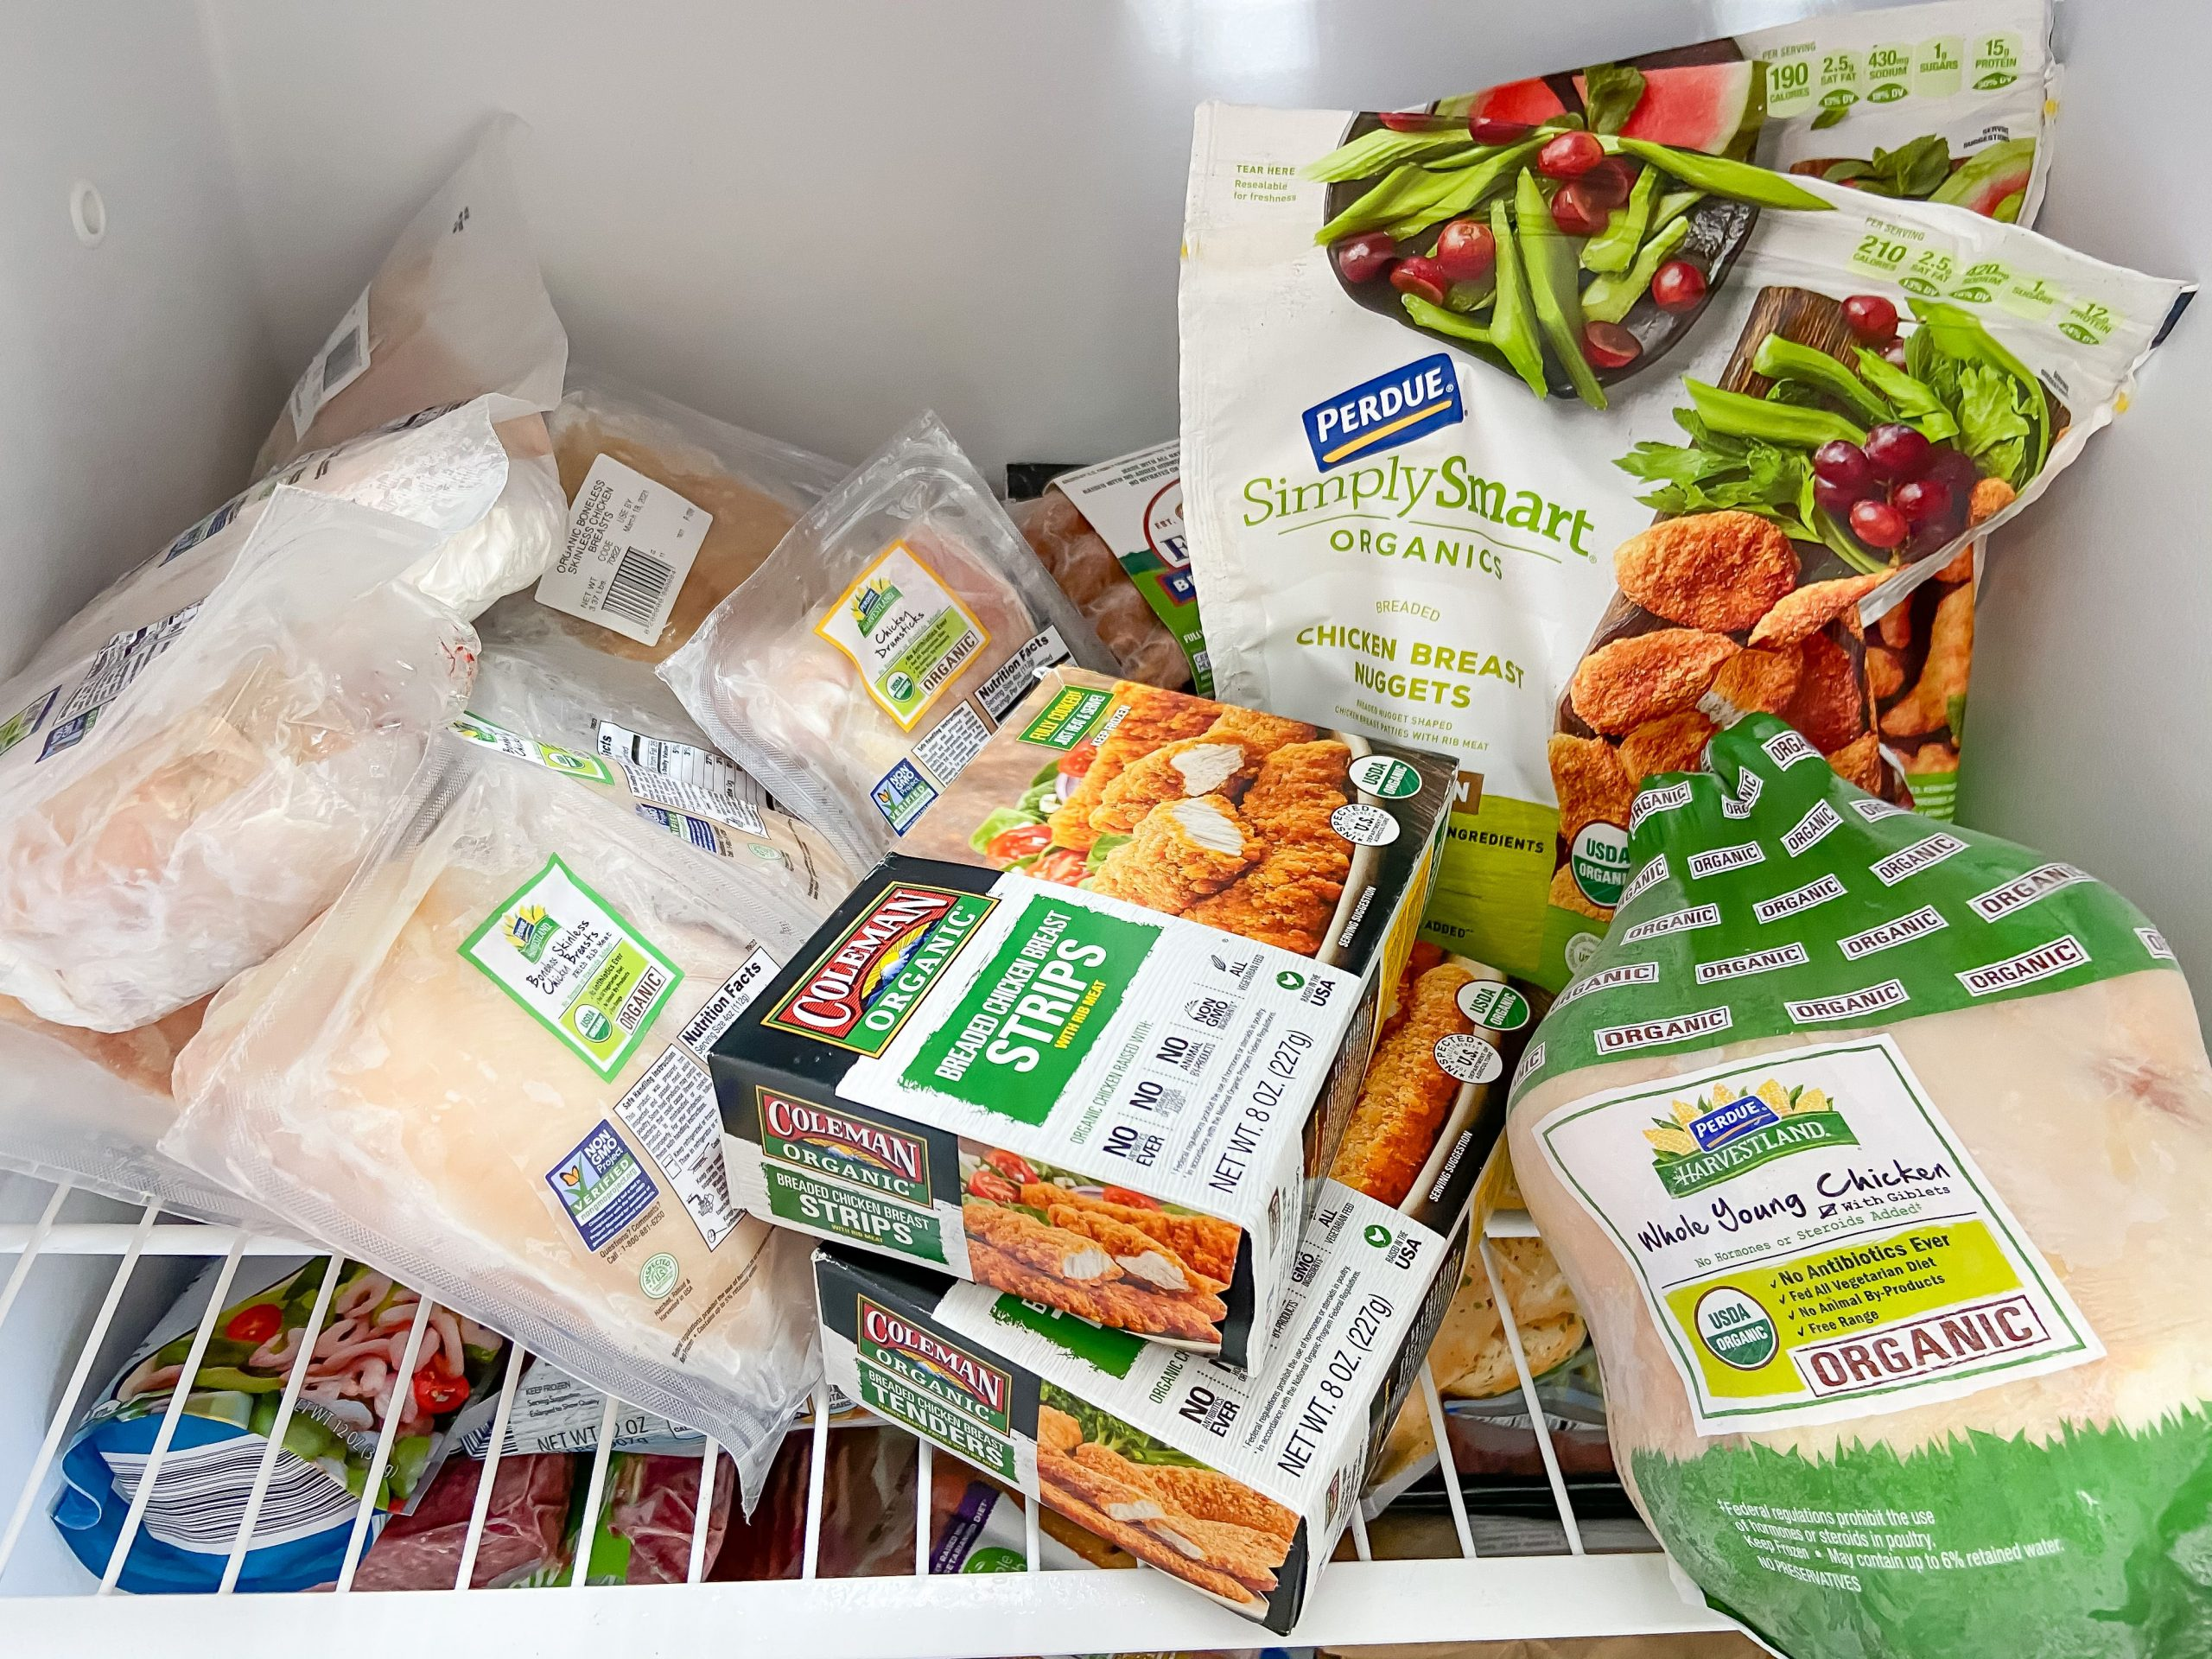 Perdue Farms reviews (freezer stocked with Perdue Farms products)